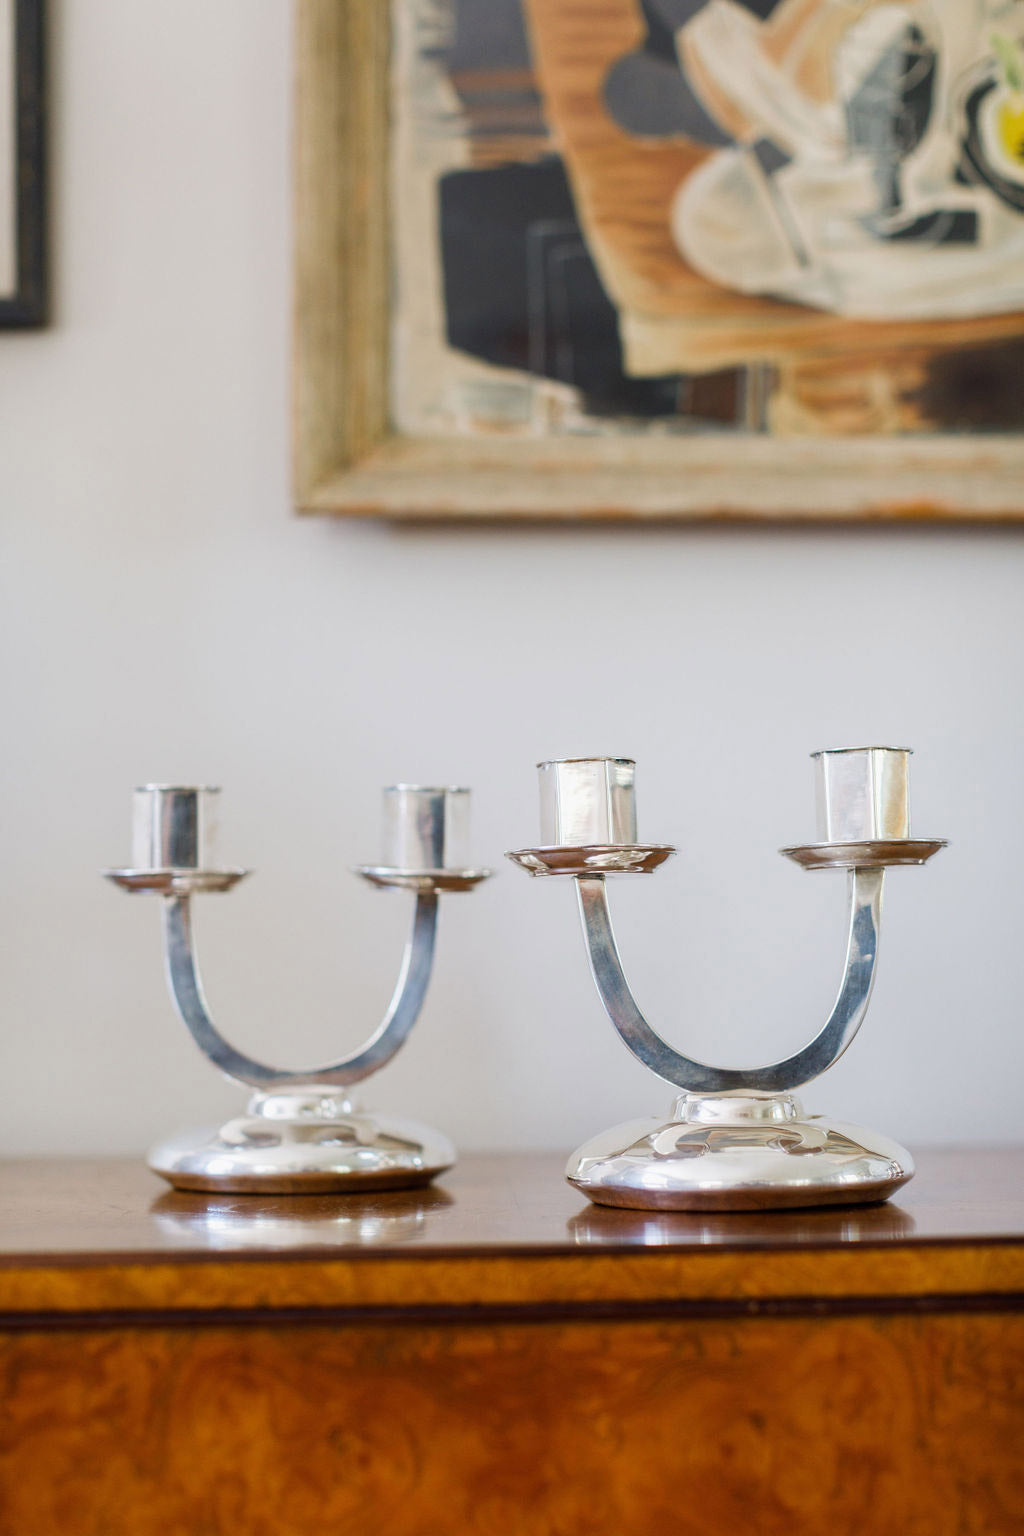 Portuguese Silver Candlesticks, c. 1930s, pair